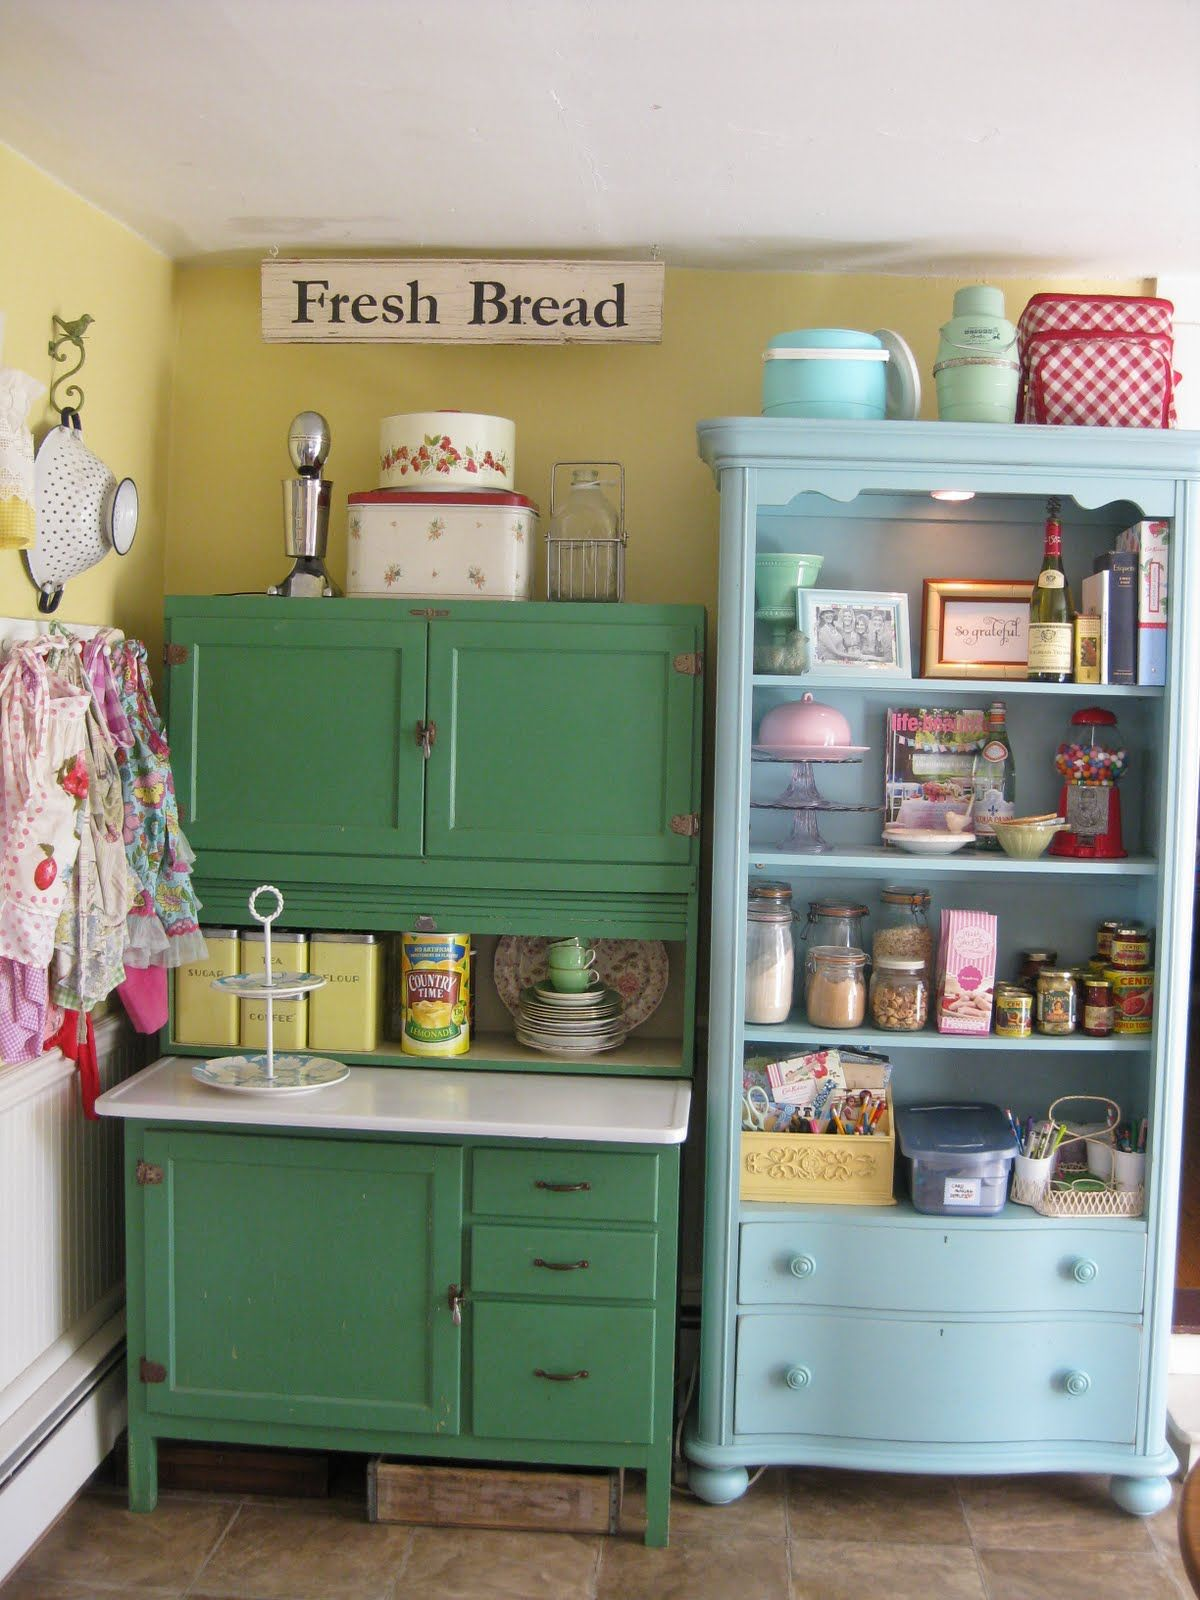 open kitchen cabinets Scenic Green And Blue Vintage Kitchen Cabinet Storage Also Open Racks As Inspiring Vintage Kitchen Furnishings